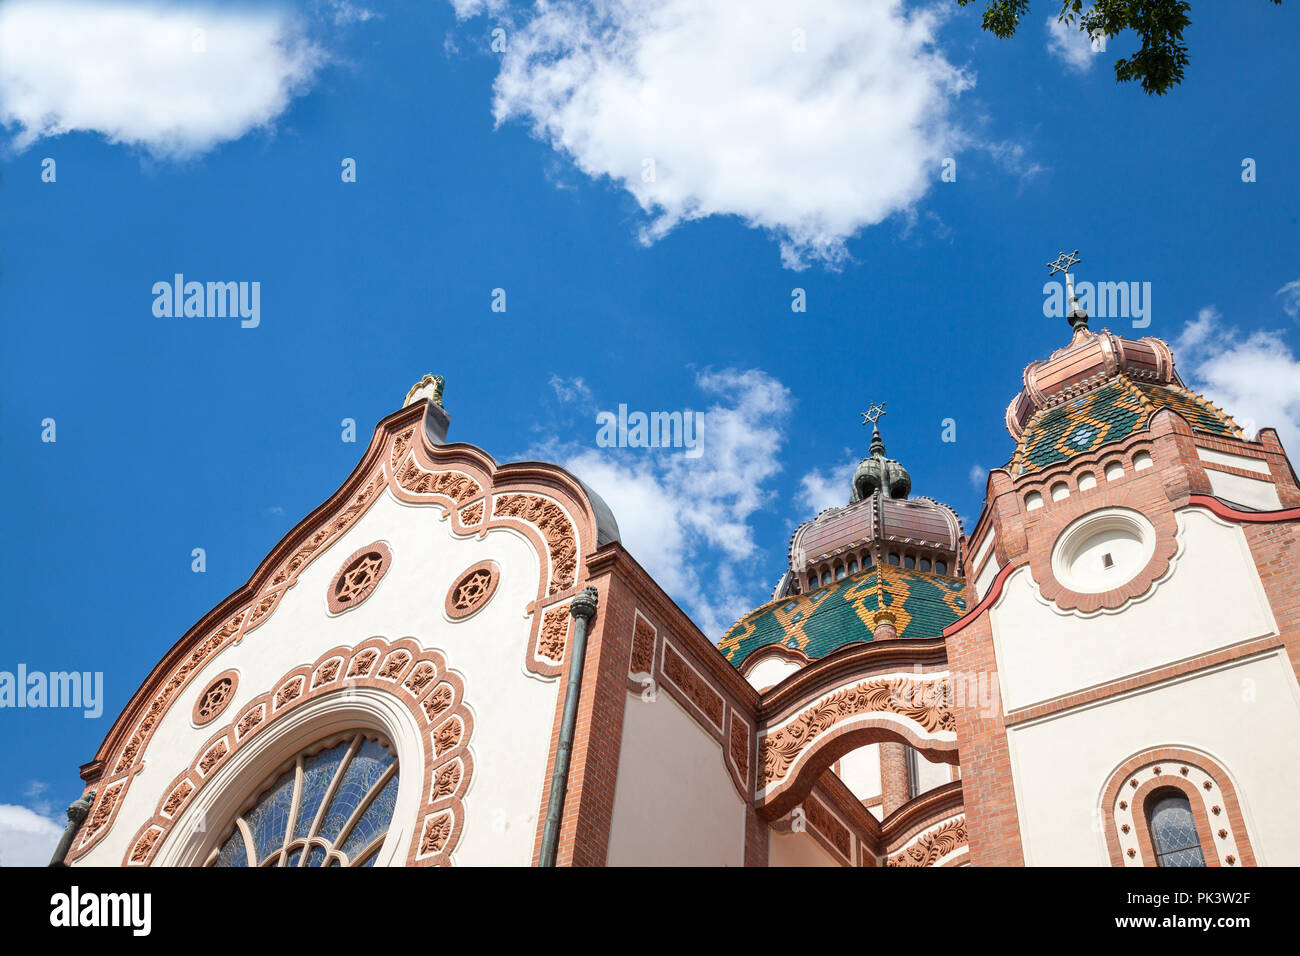 Subotica synagogue seen from the bottom during the afternoon. Also known as Jakab and Komor Synagogue, it is a symbol of the Central European judaism  - Stock Image